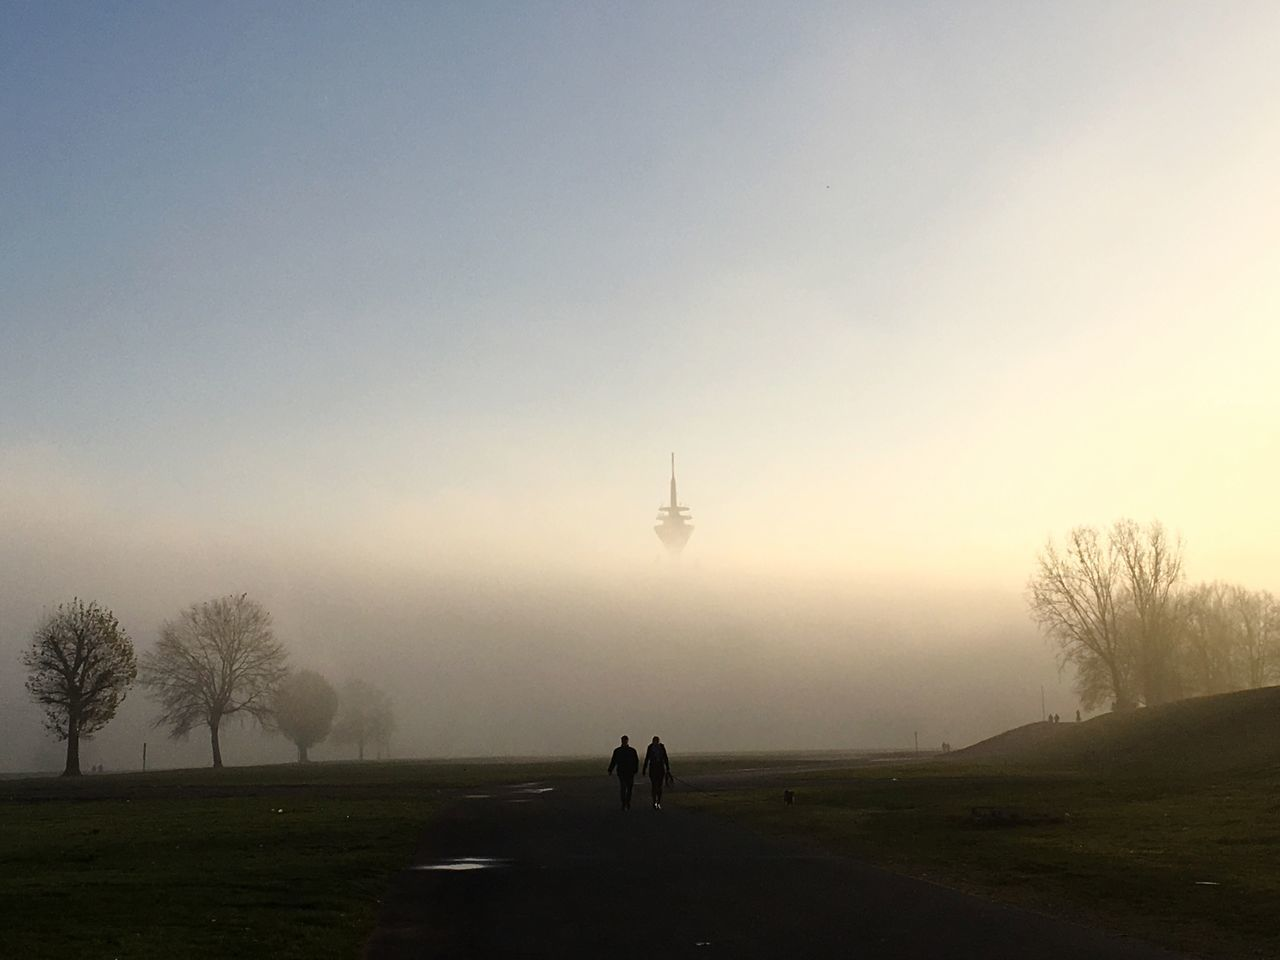 fog, foggy, tree, nature, field, mist, weather, grass, real people, sky, bare tree, two people, hazy, landscape, outdoors, men, beauty in nature, silhouette, togetherness, scenics, sunset, full length, water, day, friendship, people